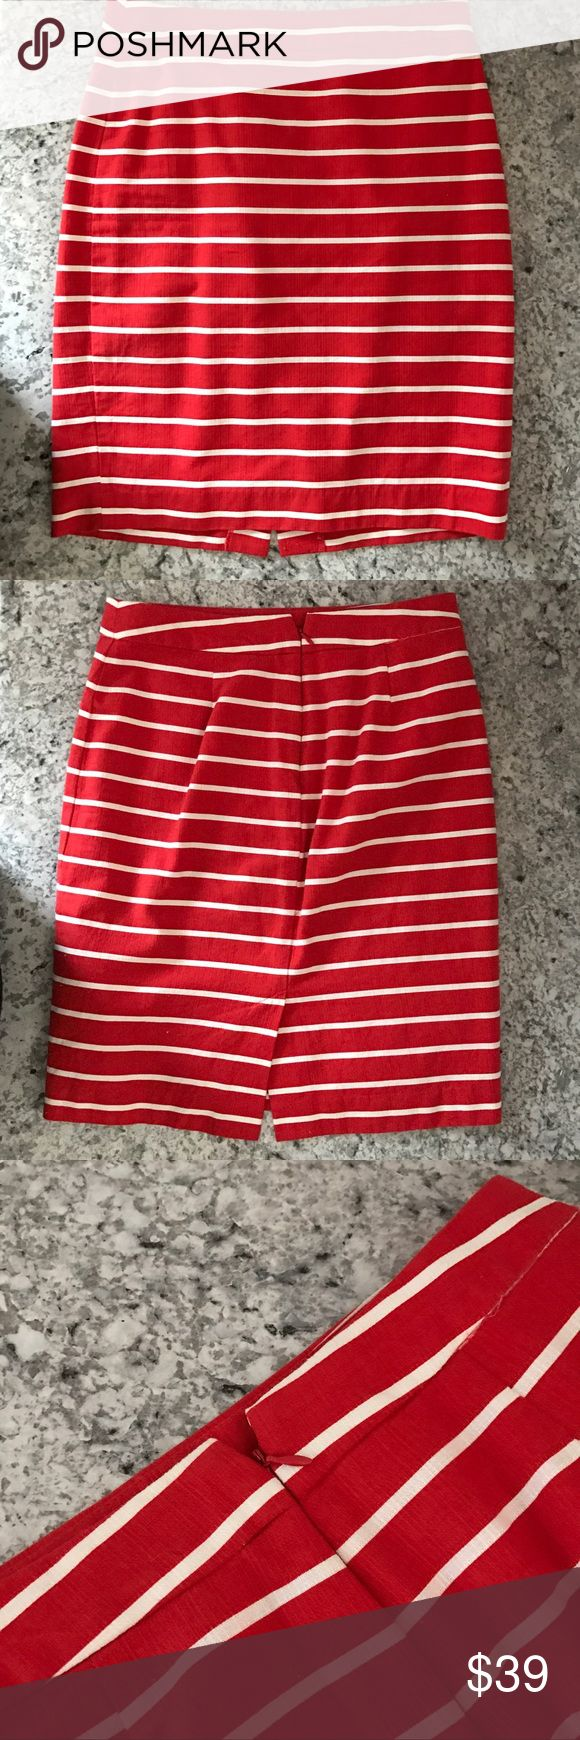 Banana Republic coral & white striped pencil skirt **Price Drop** Perfect for spring and summer! Banana Republic bright coral and white striped pencil skirt. Fully lined, back zipper, with small hook closure. Size 2. Banana Republic Skirts Pencil